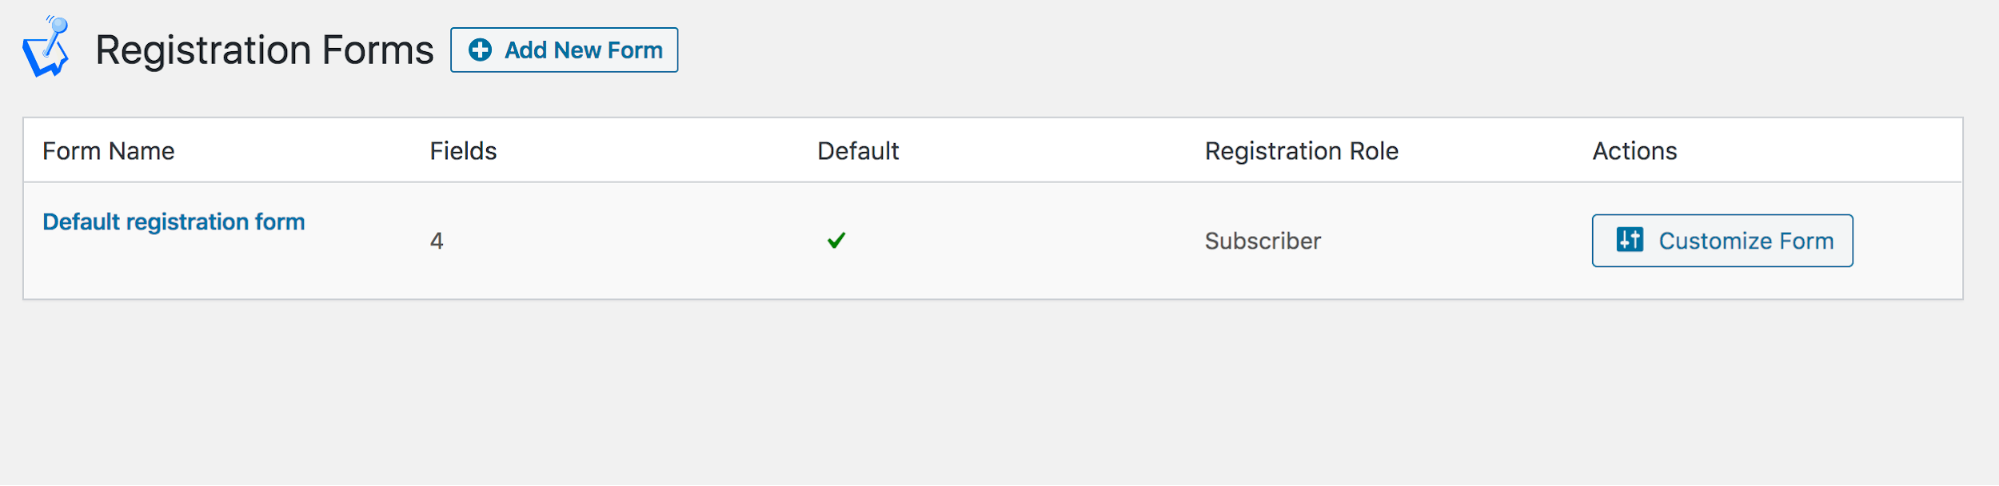 WP User Manager Registration Forms Settings